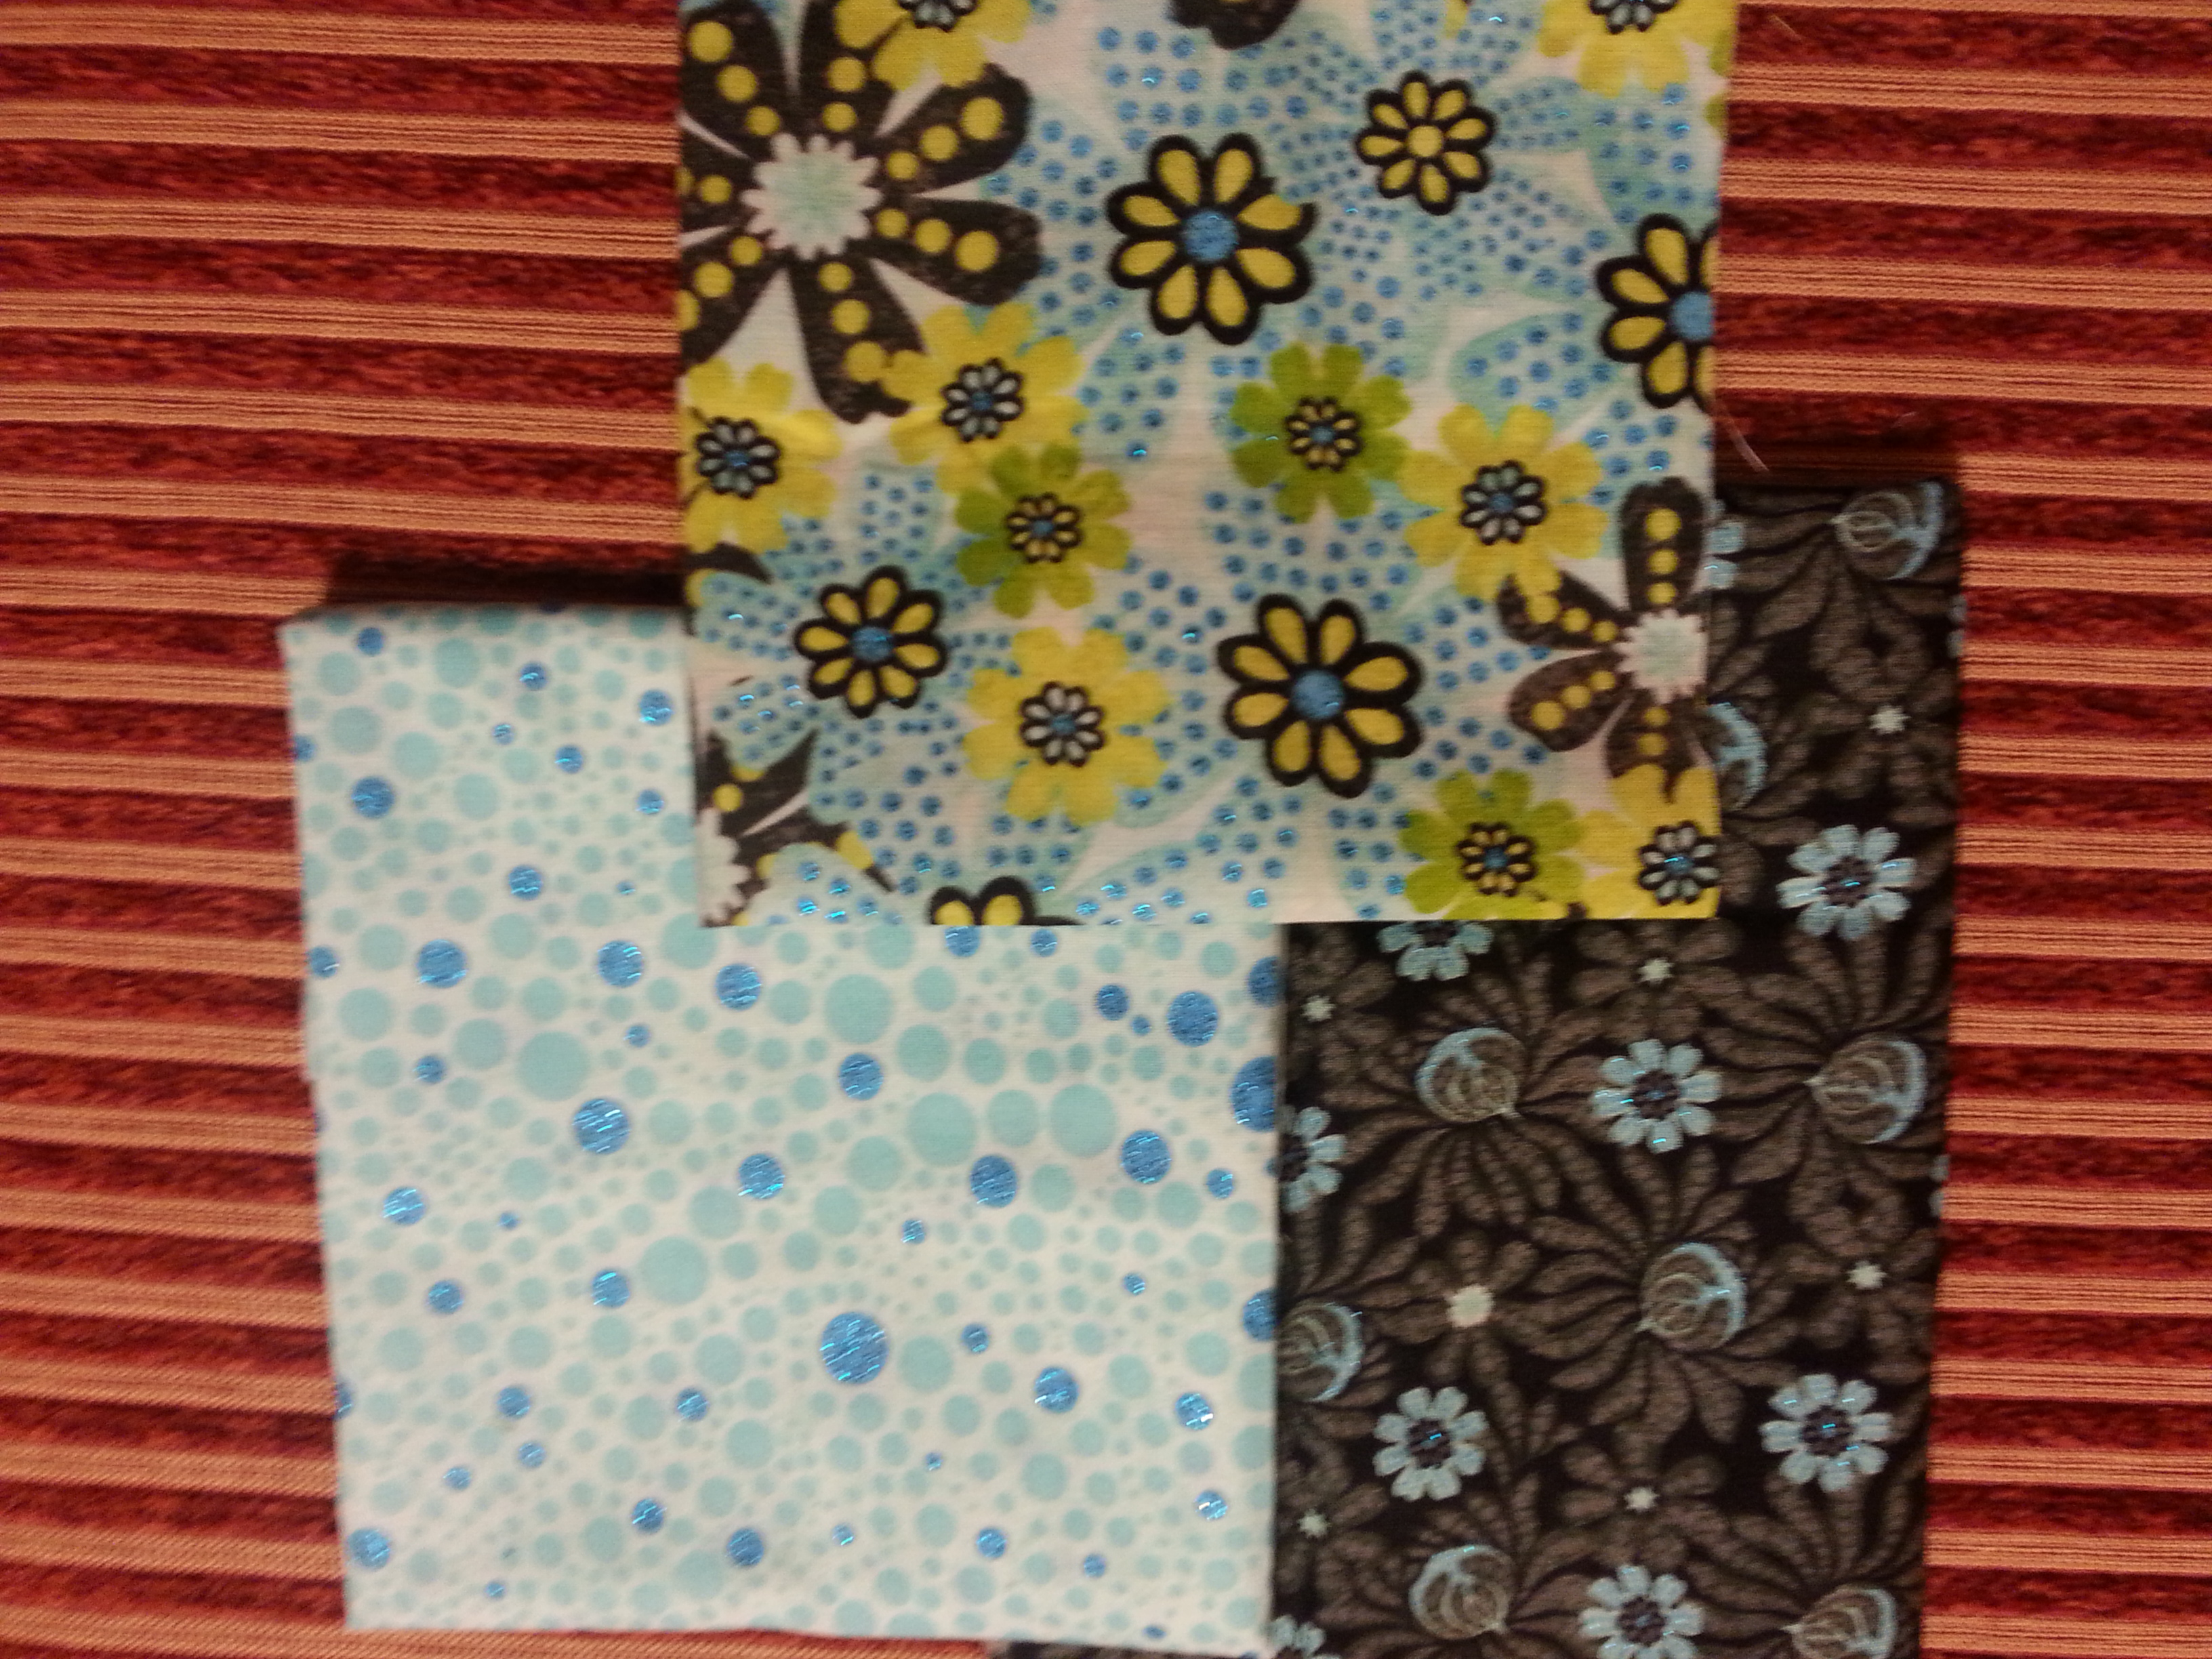 Here are the fat quarters I chose...they all have a slight shimmer on the flowers.